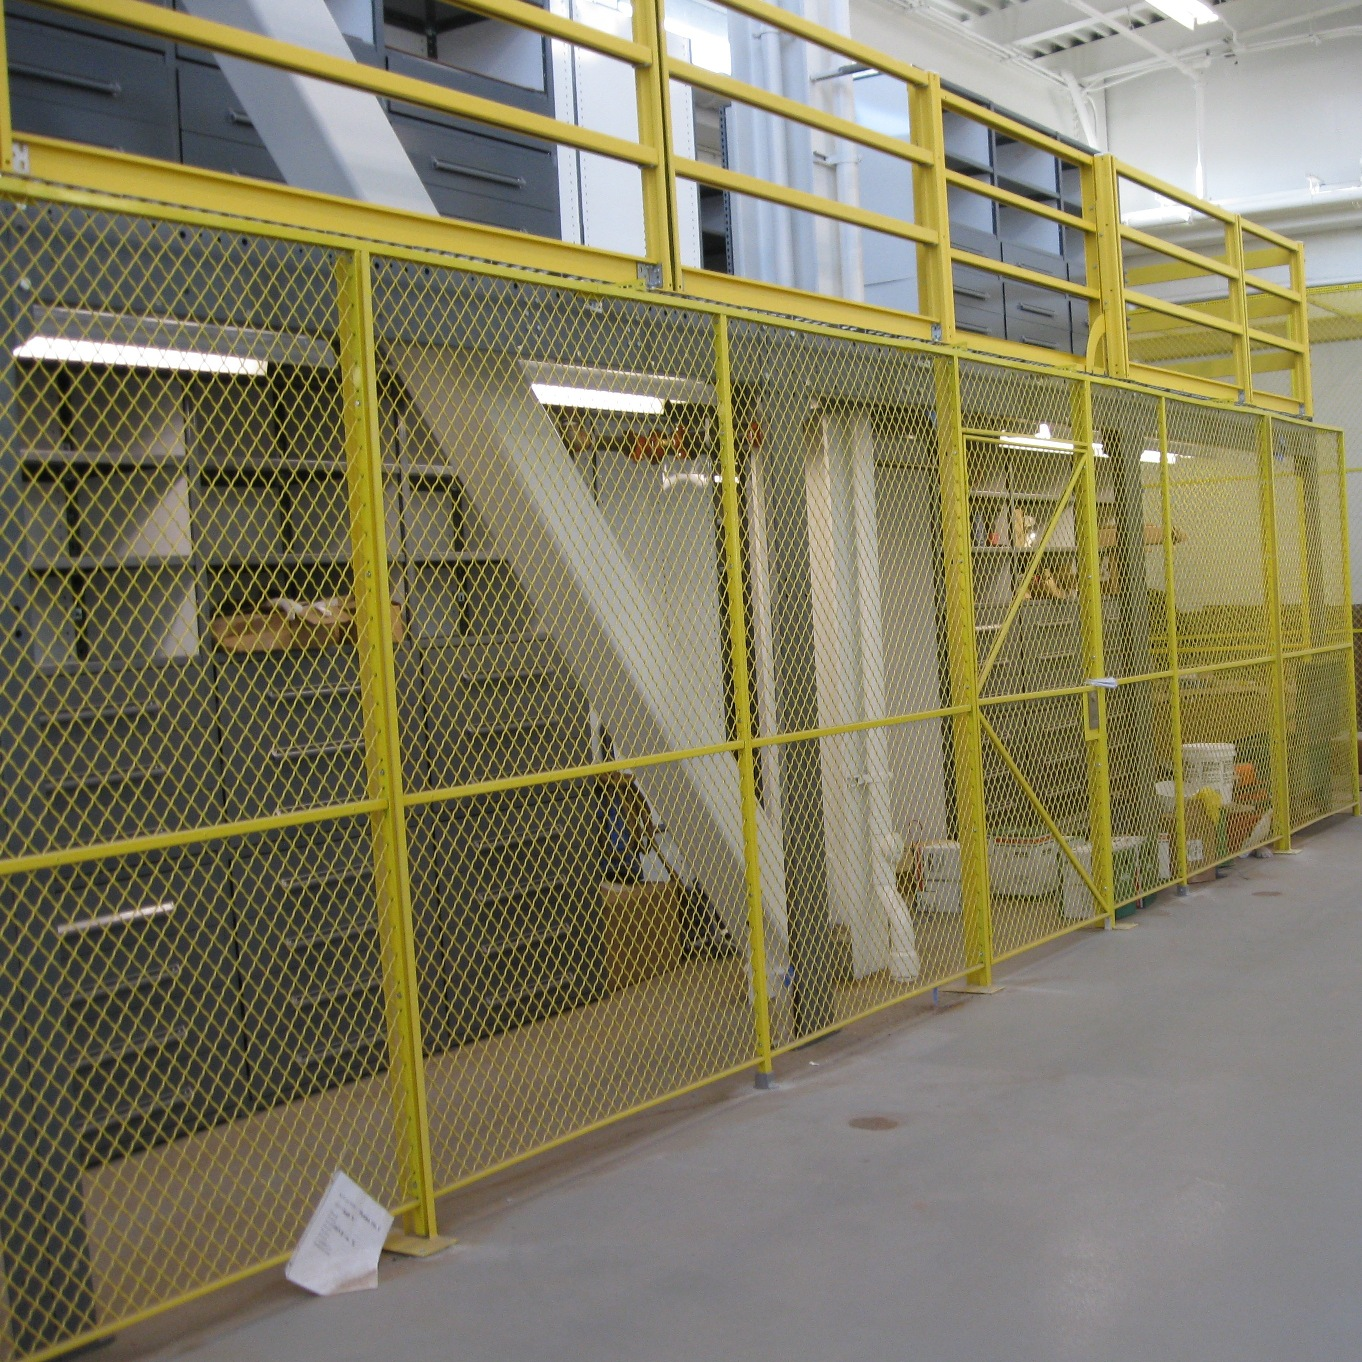 Security Fence NYC   Security Caging and Fence in Stock NYC   NYC ...